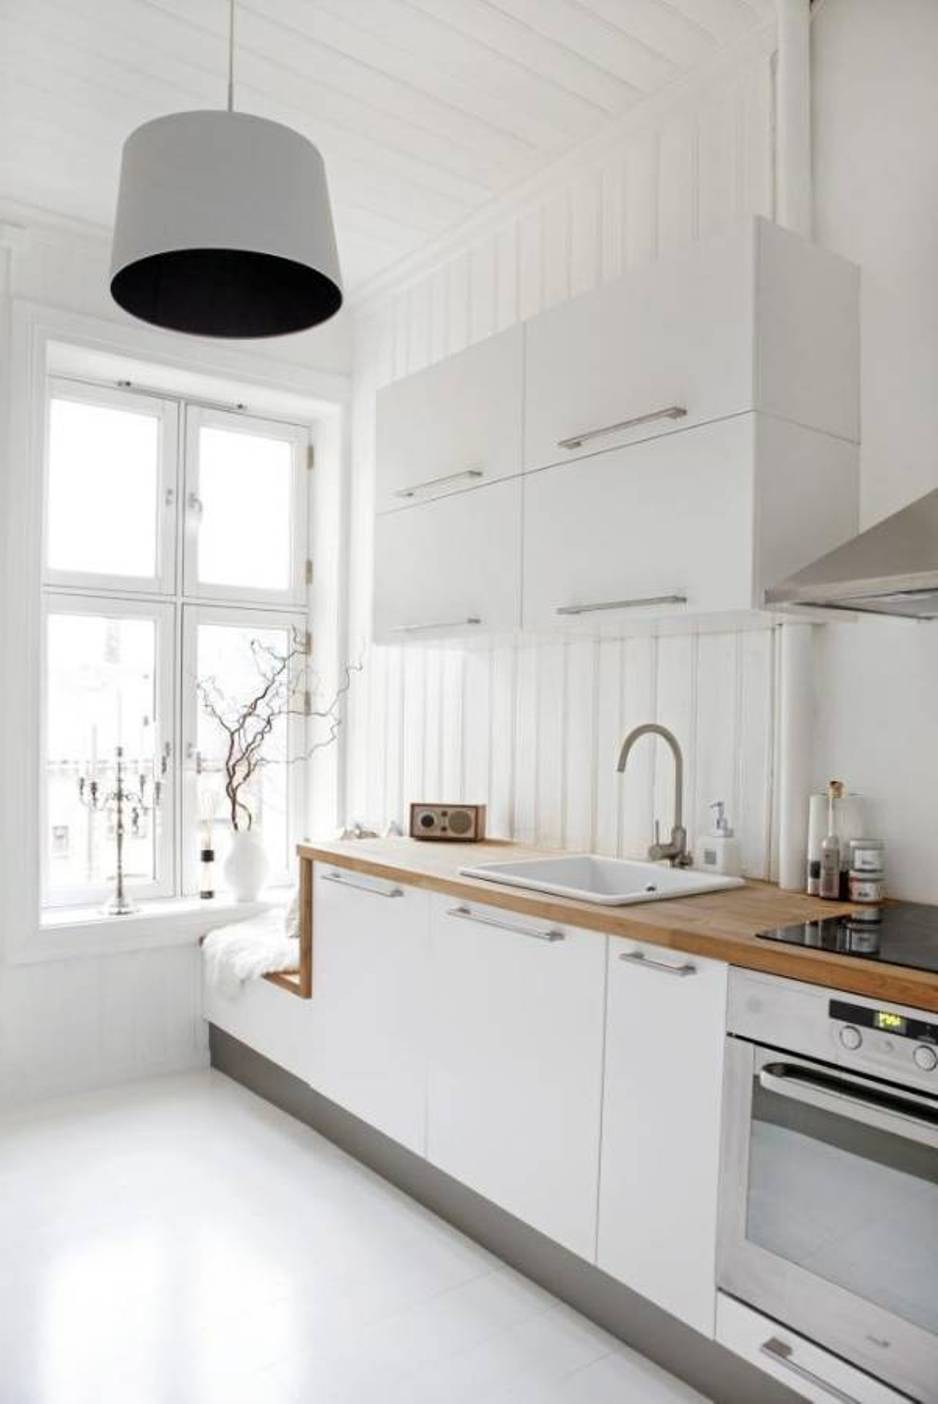 10 amazing scandinavian kitchen interior design ideas. Black Bedroom Furniture Sets. Home Design Ideas